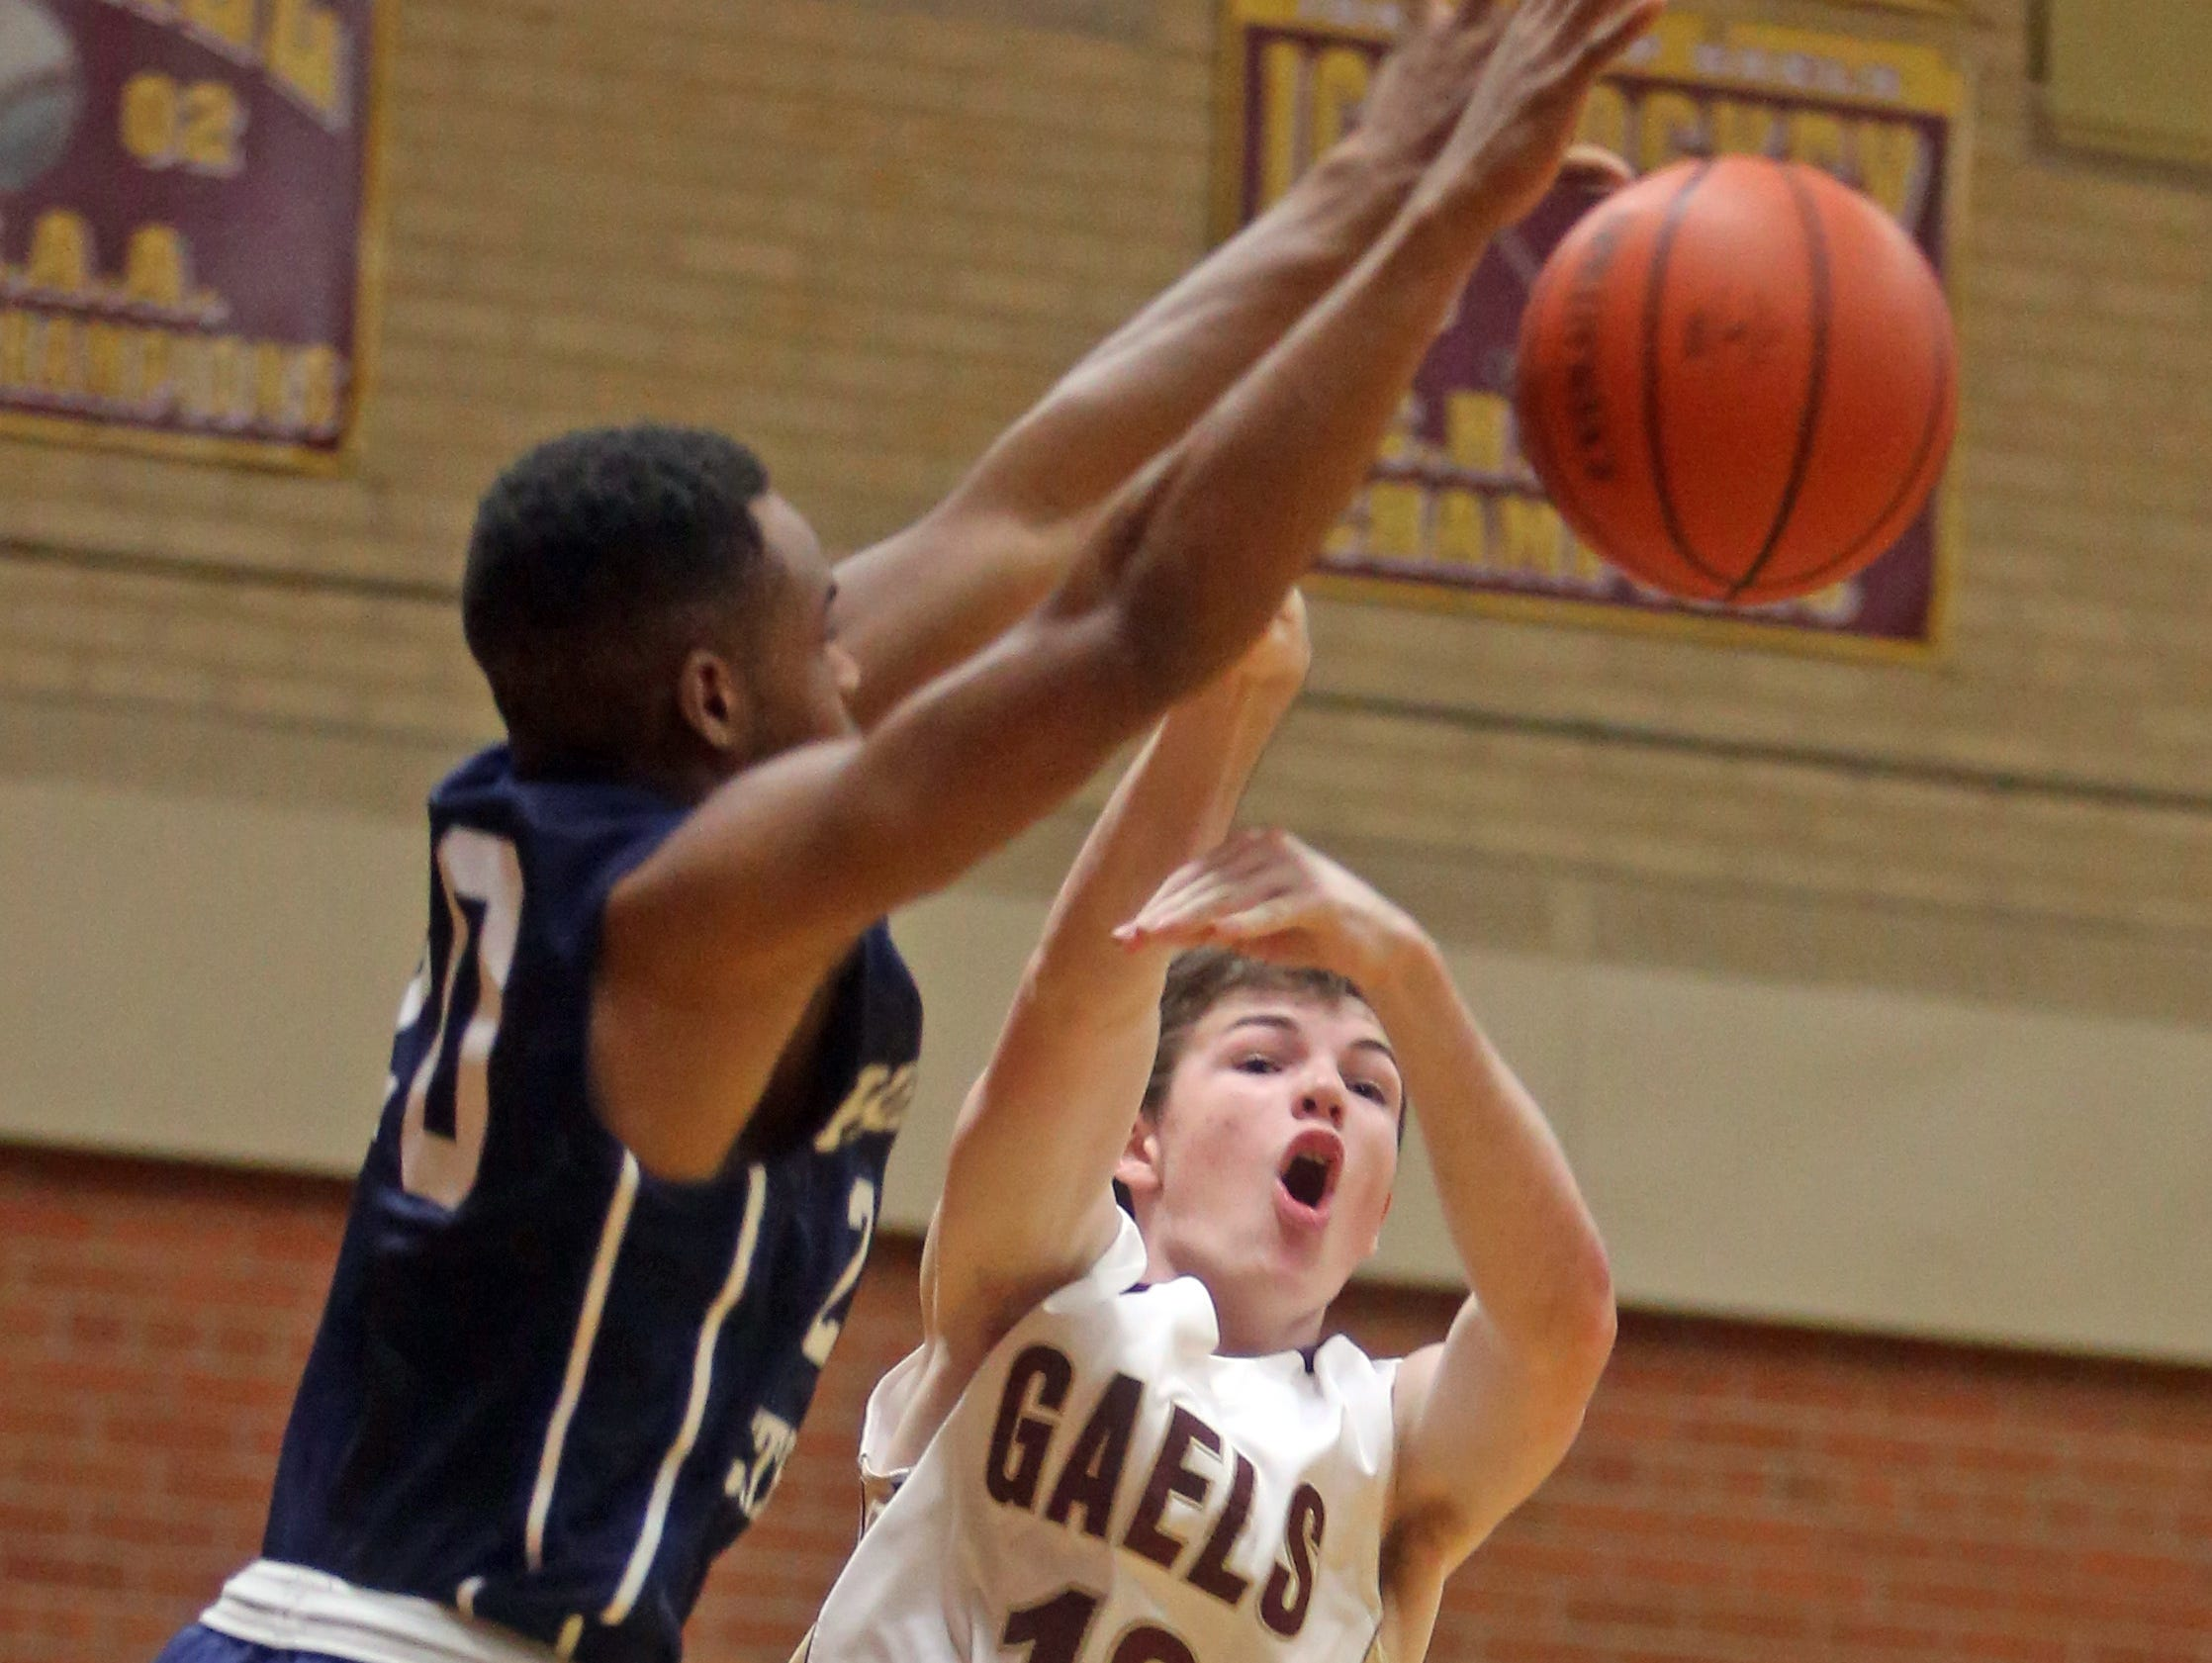 Kennedy Catholic's Alex Benson blocks a shot by Iona Prep's Kevin Fee during a varsity basketball game at Iona Prep in New Rochelle Dec. 9, 2015. Iona Prep defeated Kennedy 75-49.